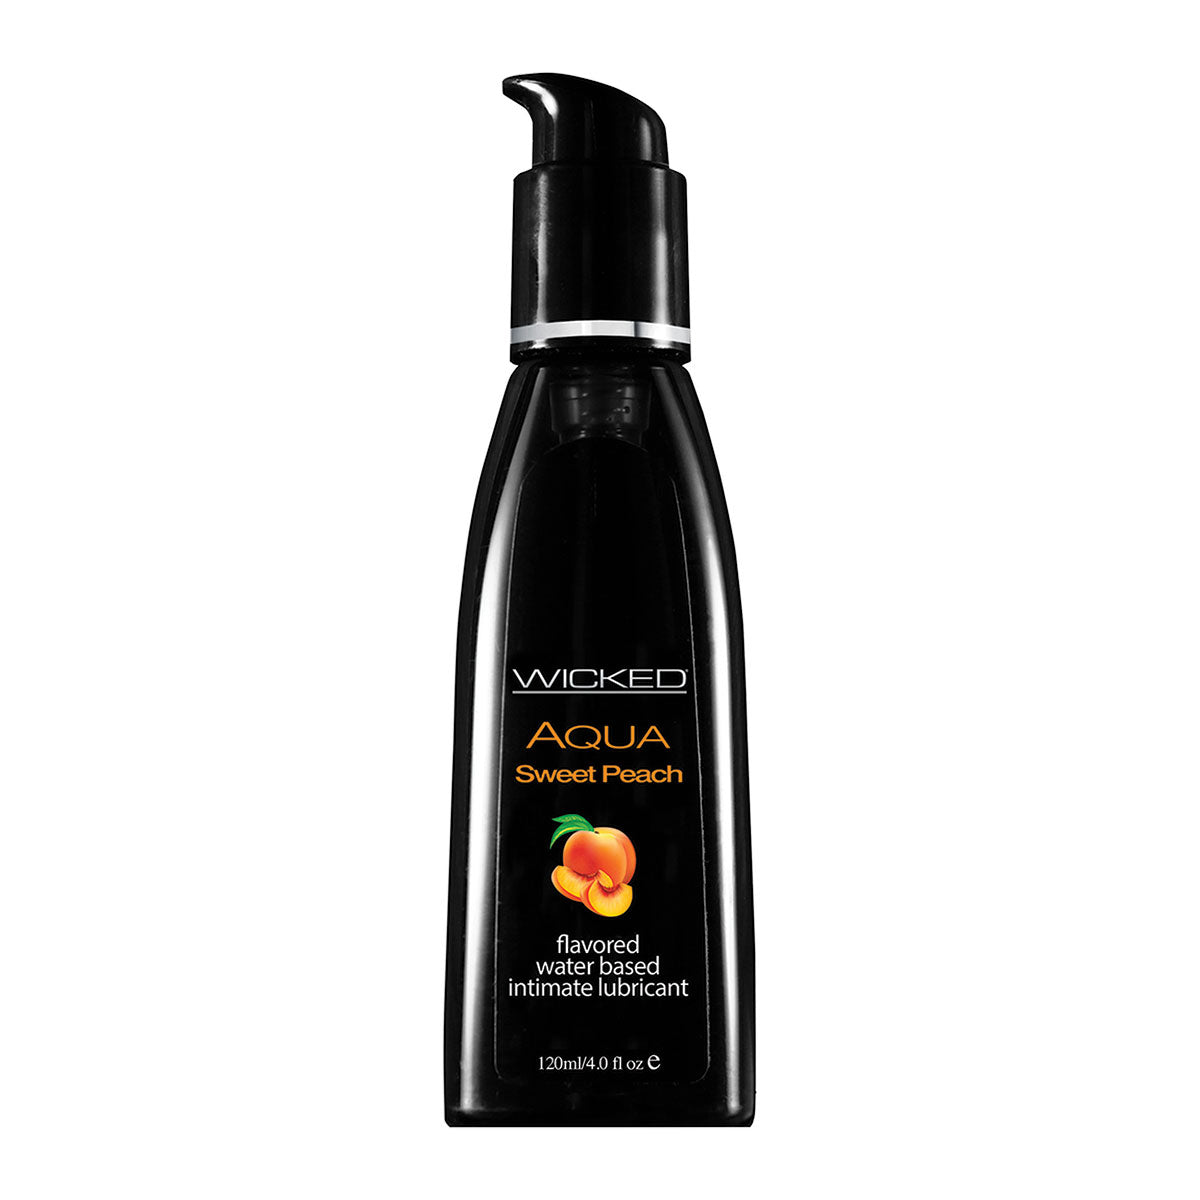 Wicked Sensual Care Aqua 4oz Sweet Peach